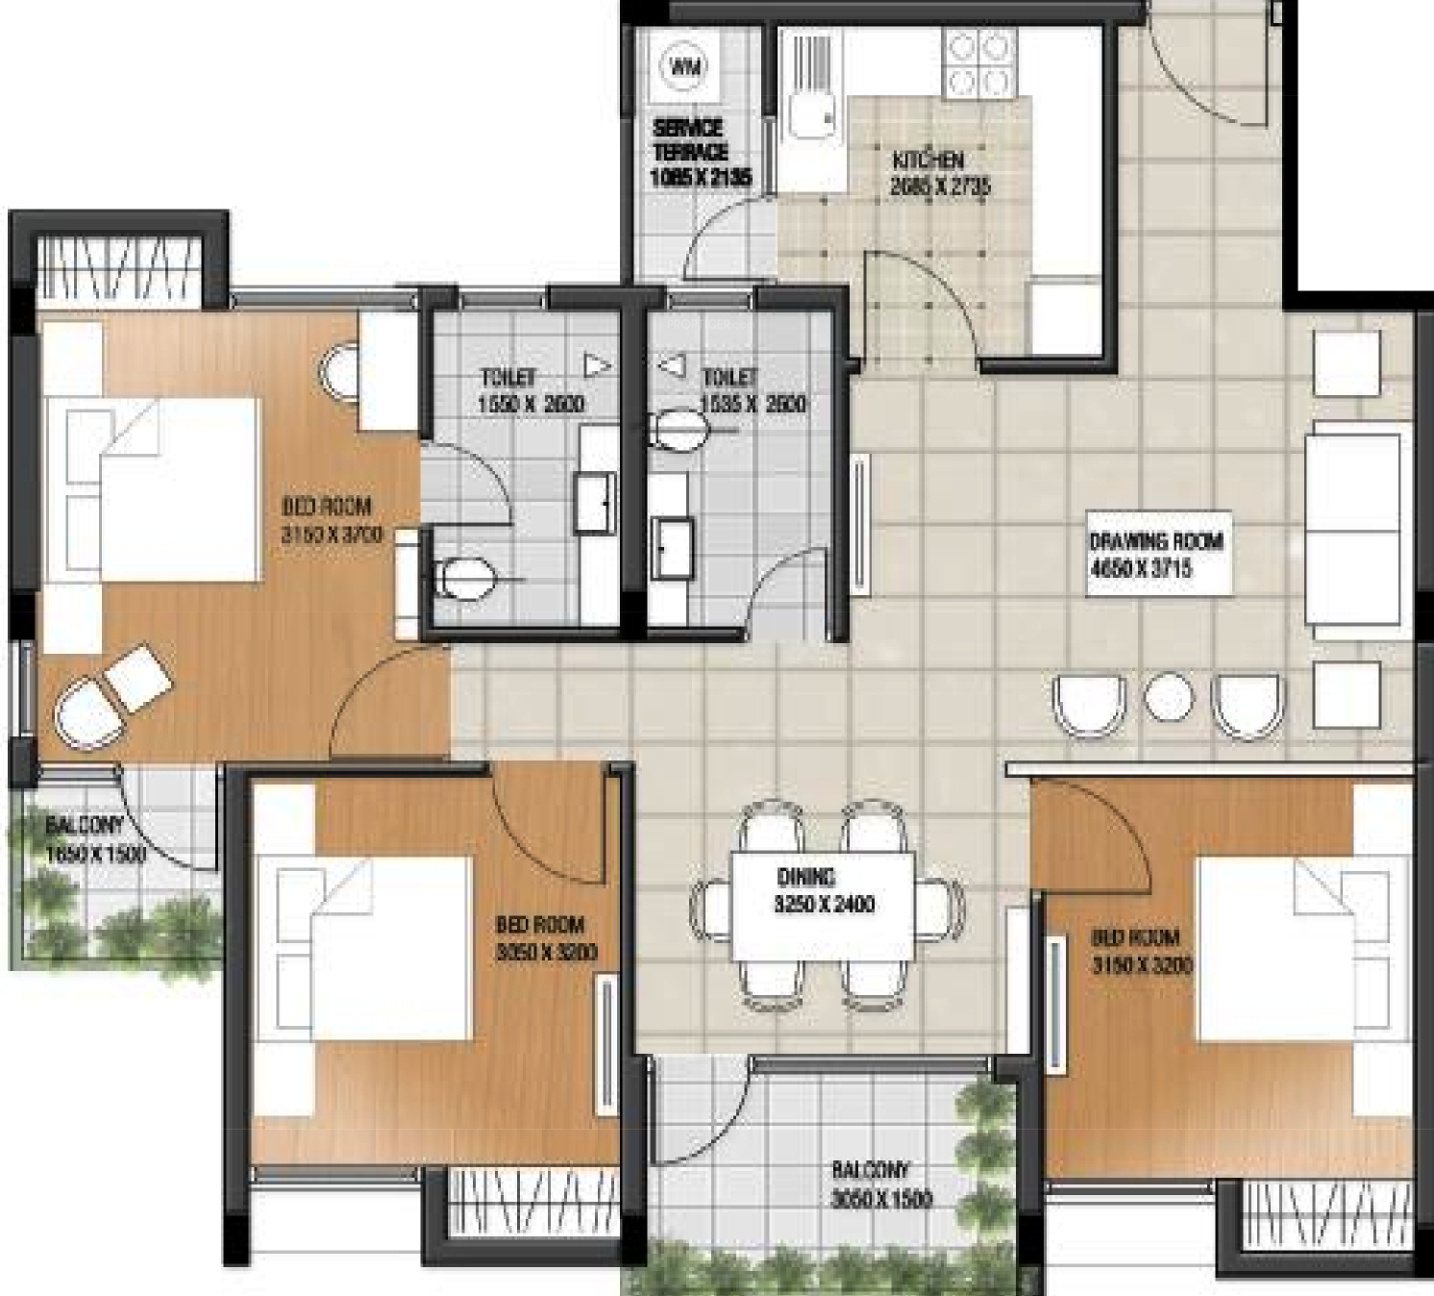 Vedic house plans house plans - Some smart home design plans ...